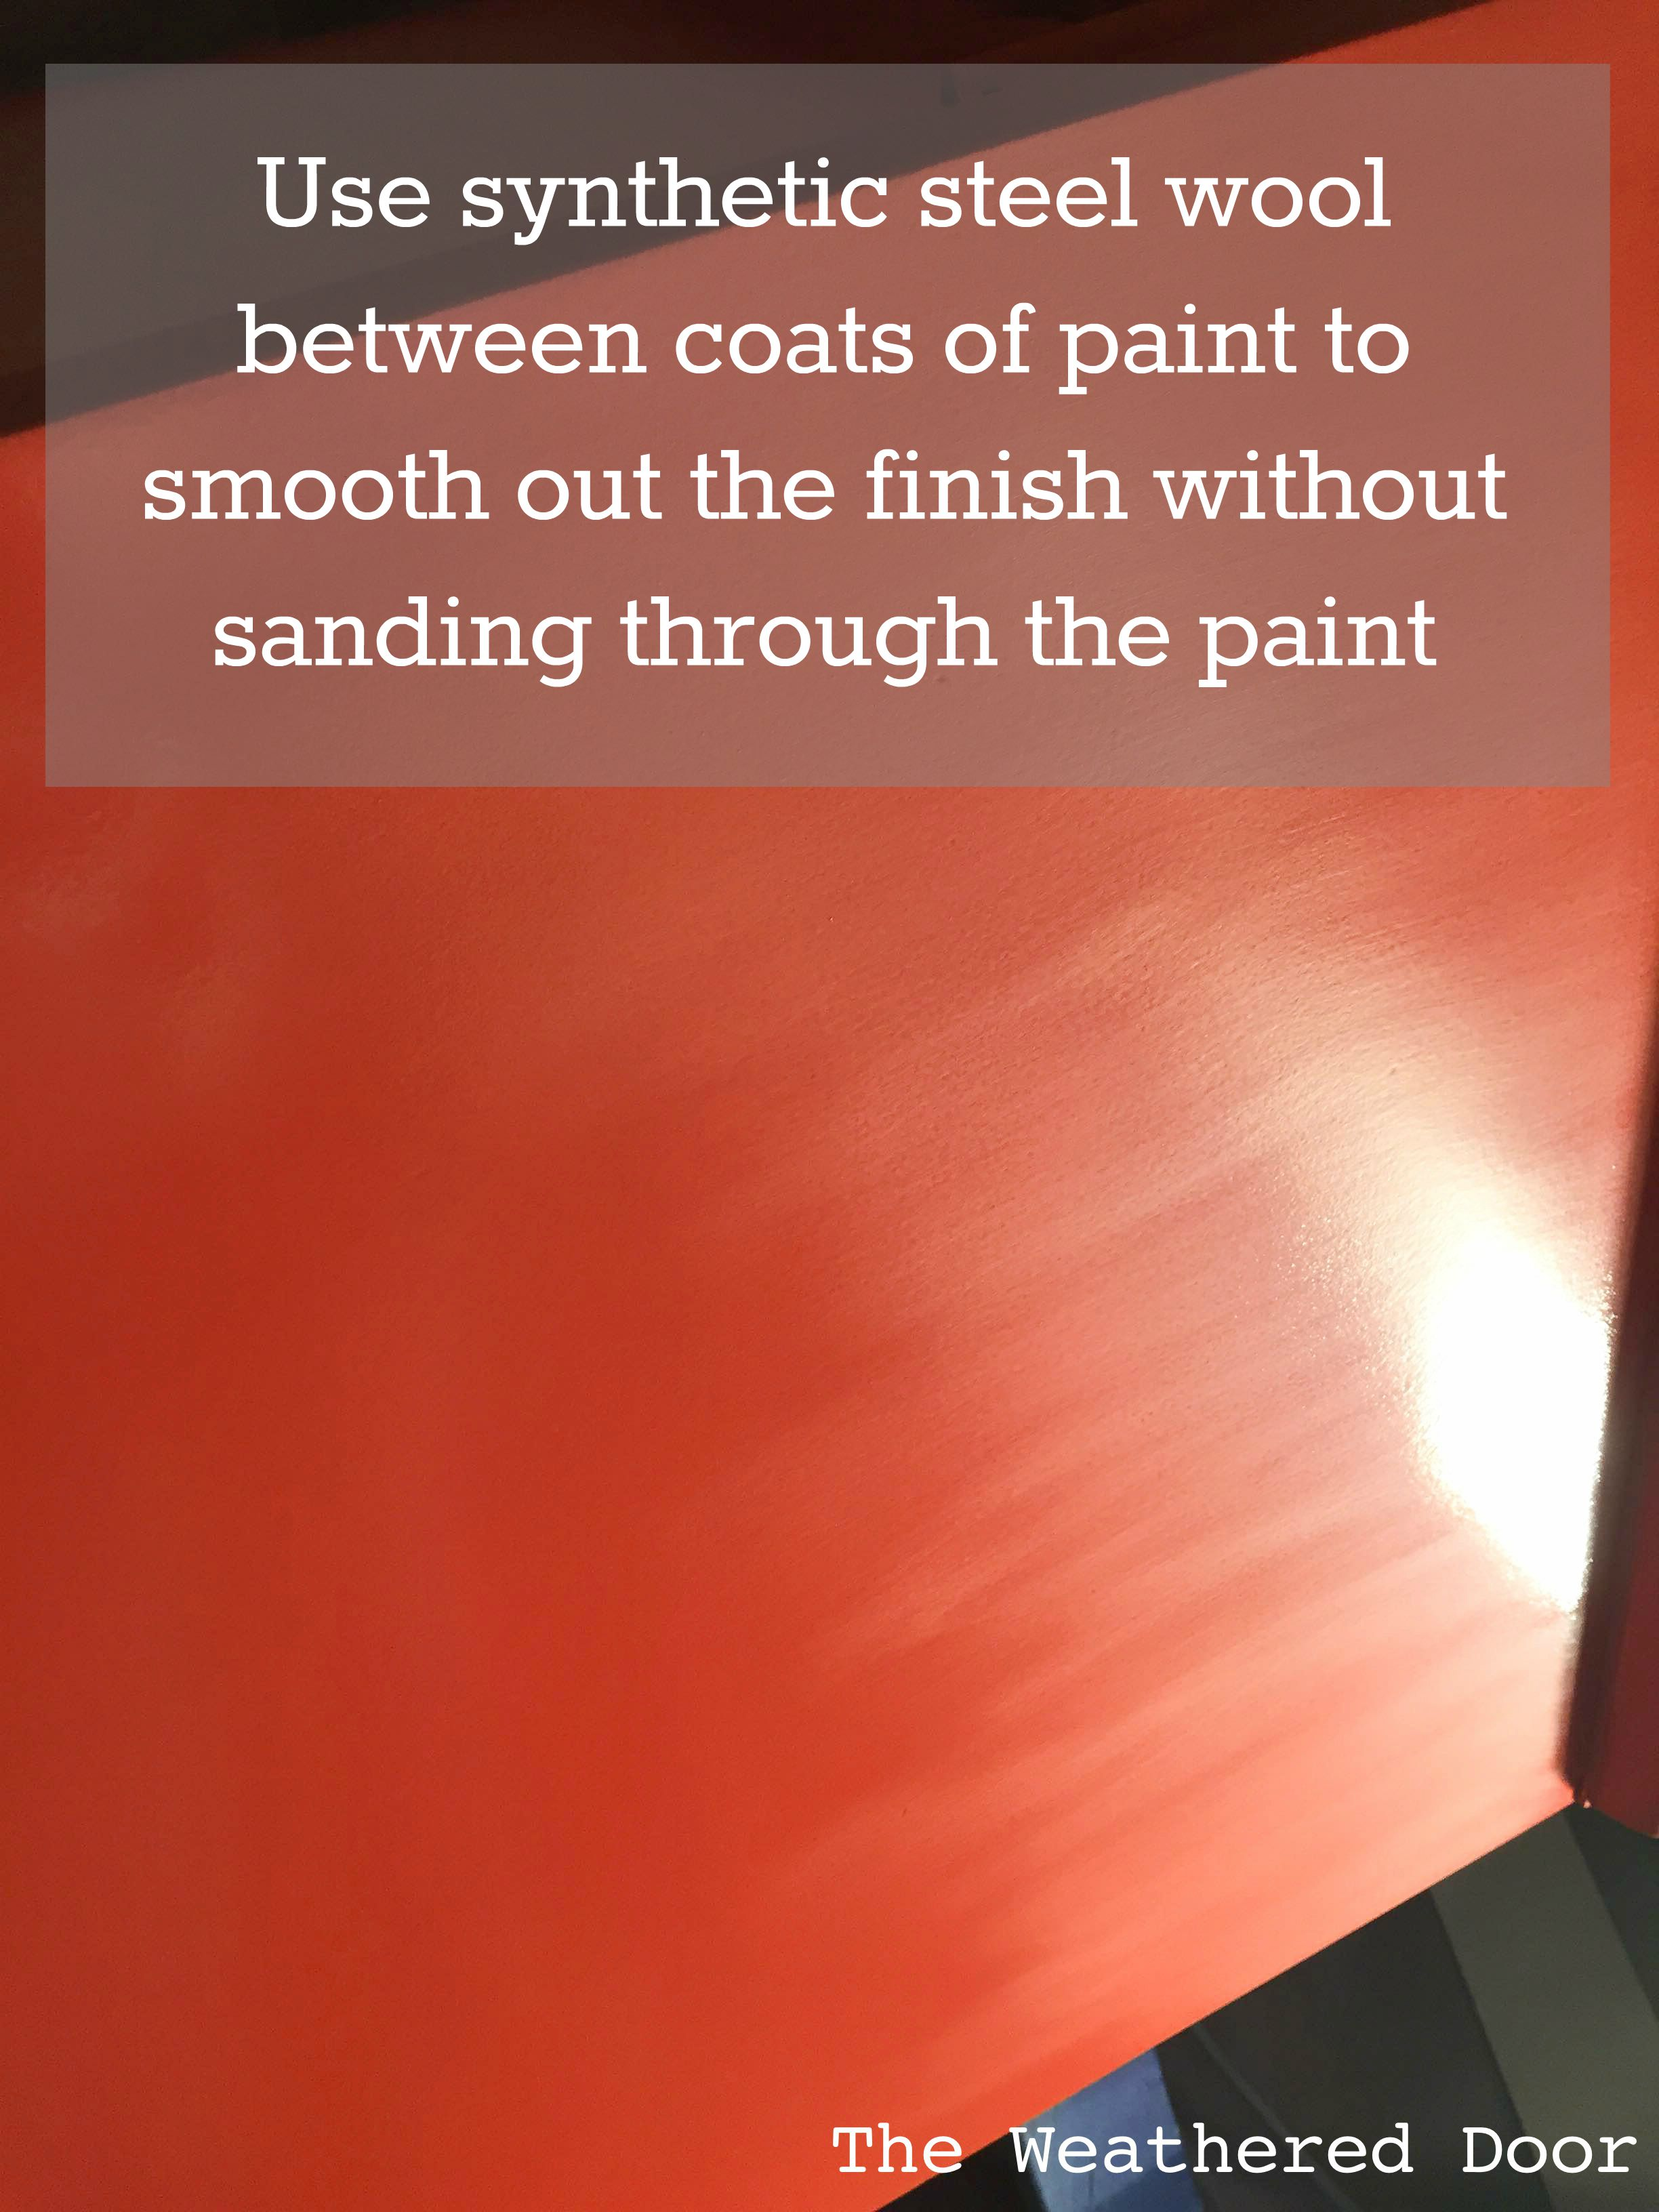 ... Benjamin Moore Advance Waterborne Alkyd Paint Review Use Synthetic  Steel Wool Between Coats To Smooth Out ...